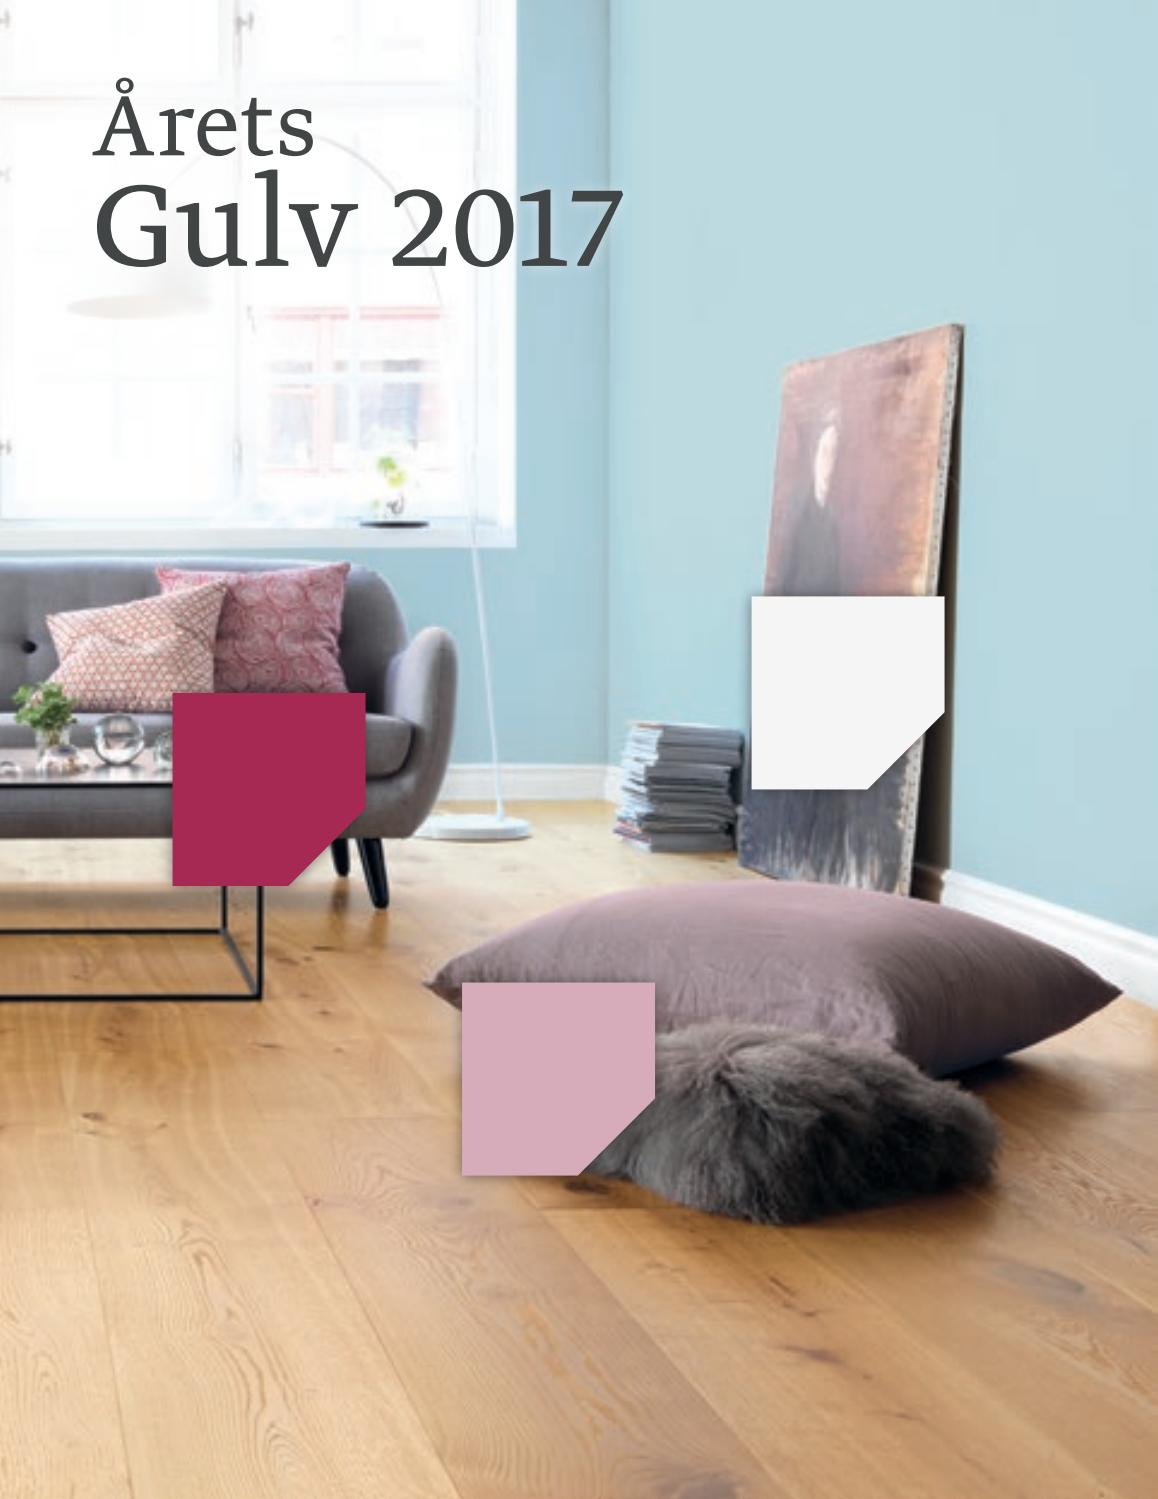 ?rets Gulv 2017 by Fargerike Norge - Issuu